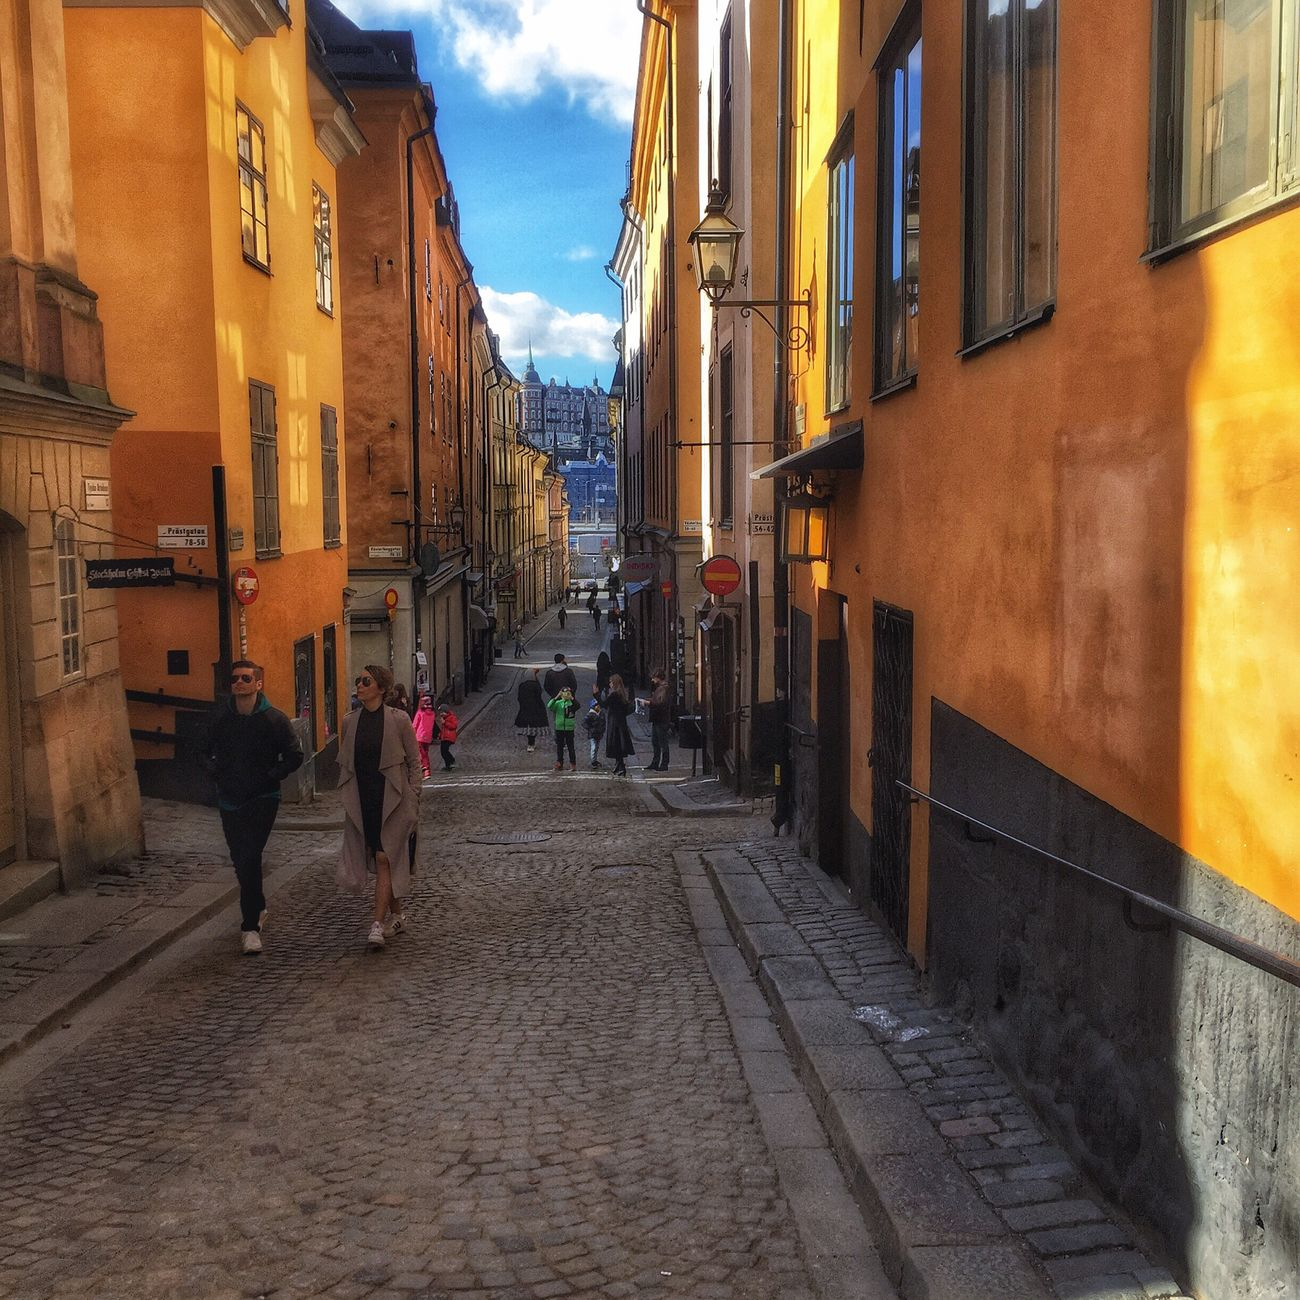 Stockholm Taking Photos Enjoying Life Streetphotography IPhoneography Stockholm Sweden Taking Photos My Smartphone Life Old Buildings Oldtown Oldtownstockholm